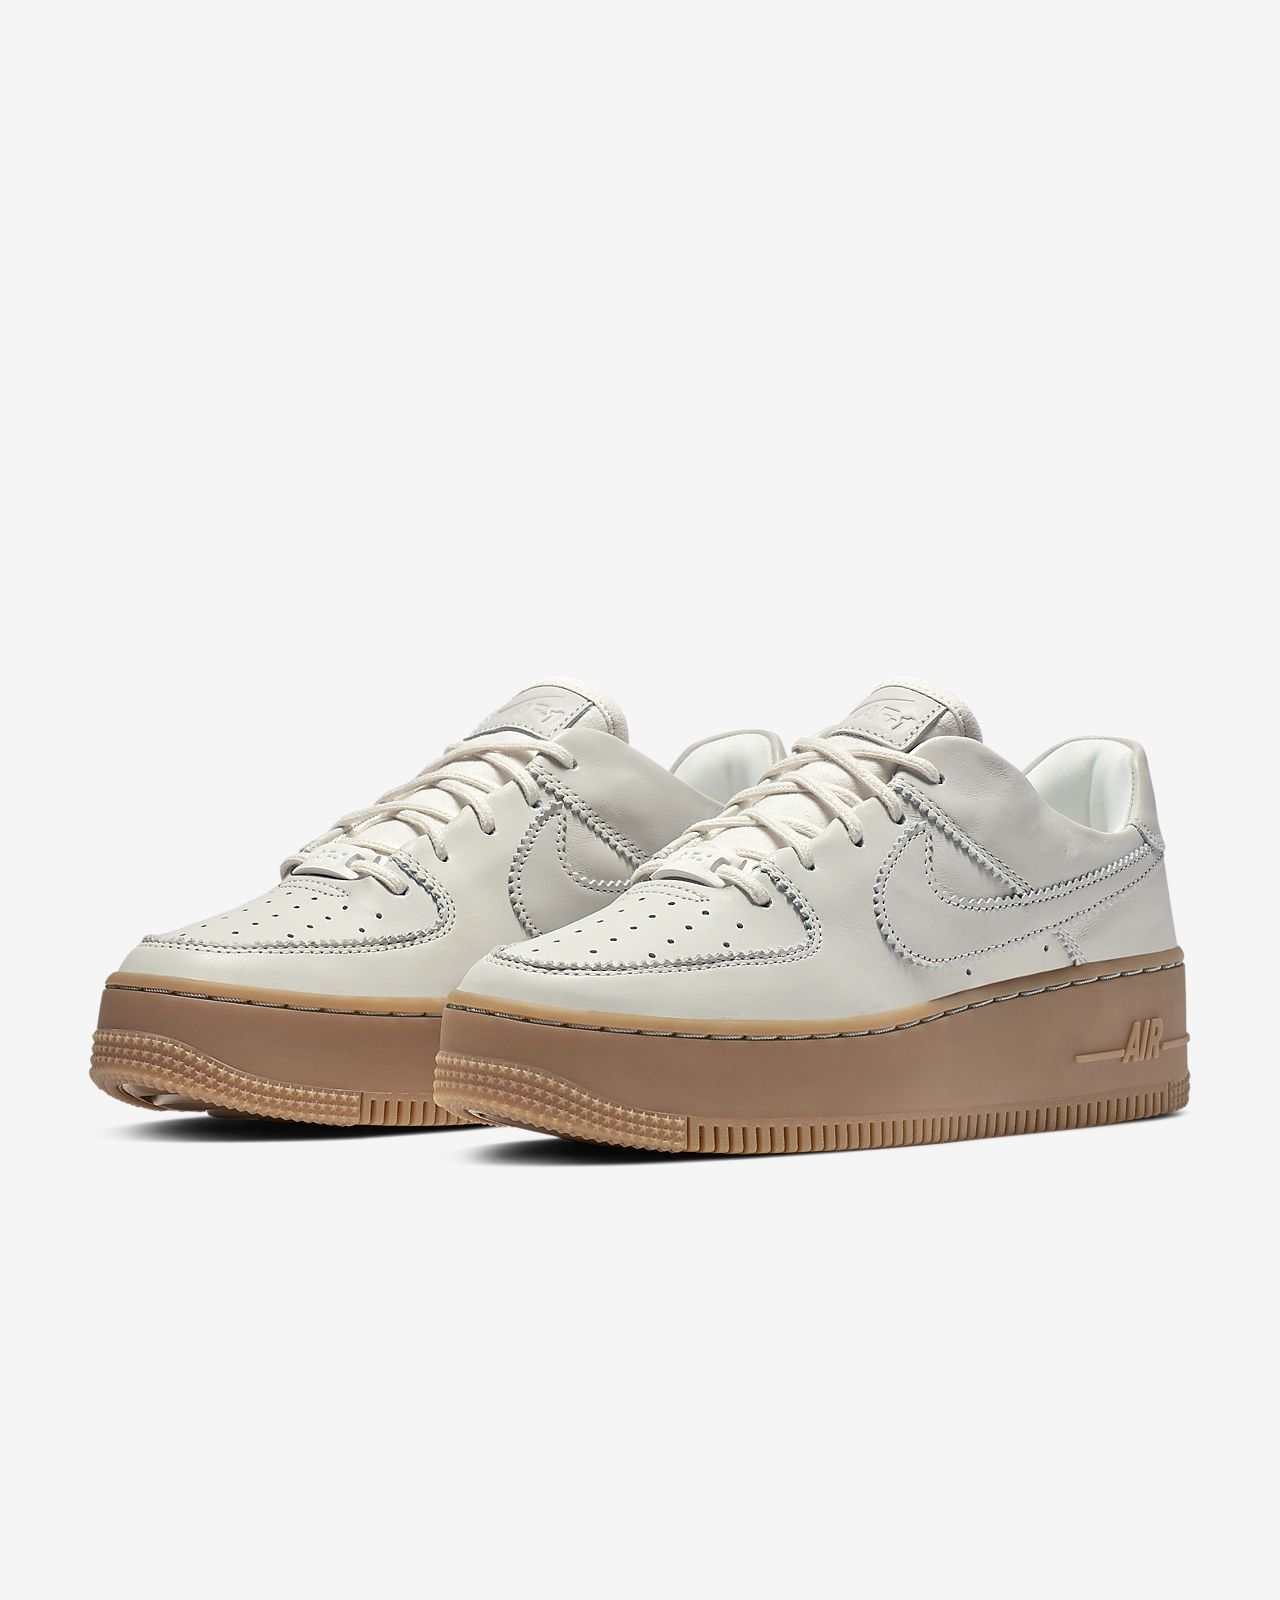 new product 7e627 d0831 ... Nike Air Force 1 Sage Low LX Women s Shoe